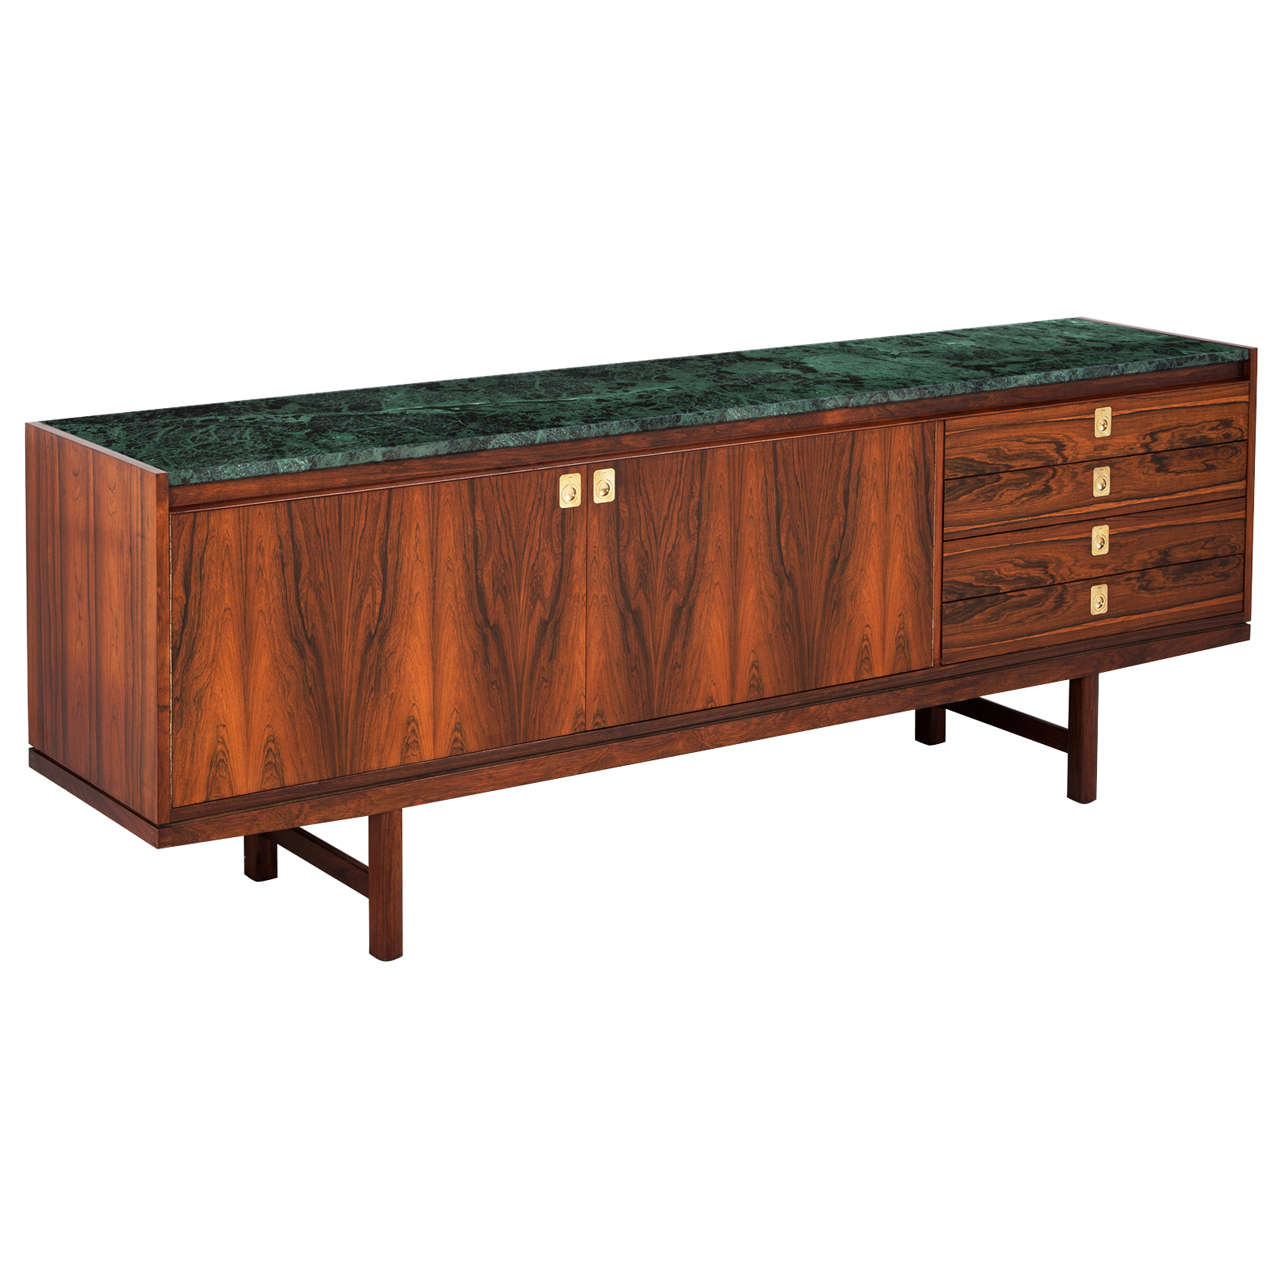 Rosewood Sideboard By Robert Heritage With Green Marble